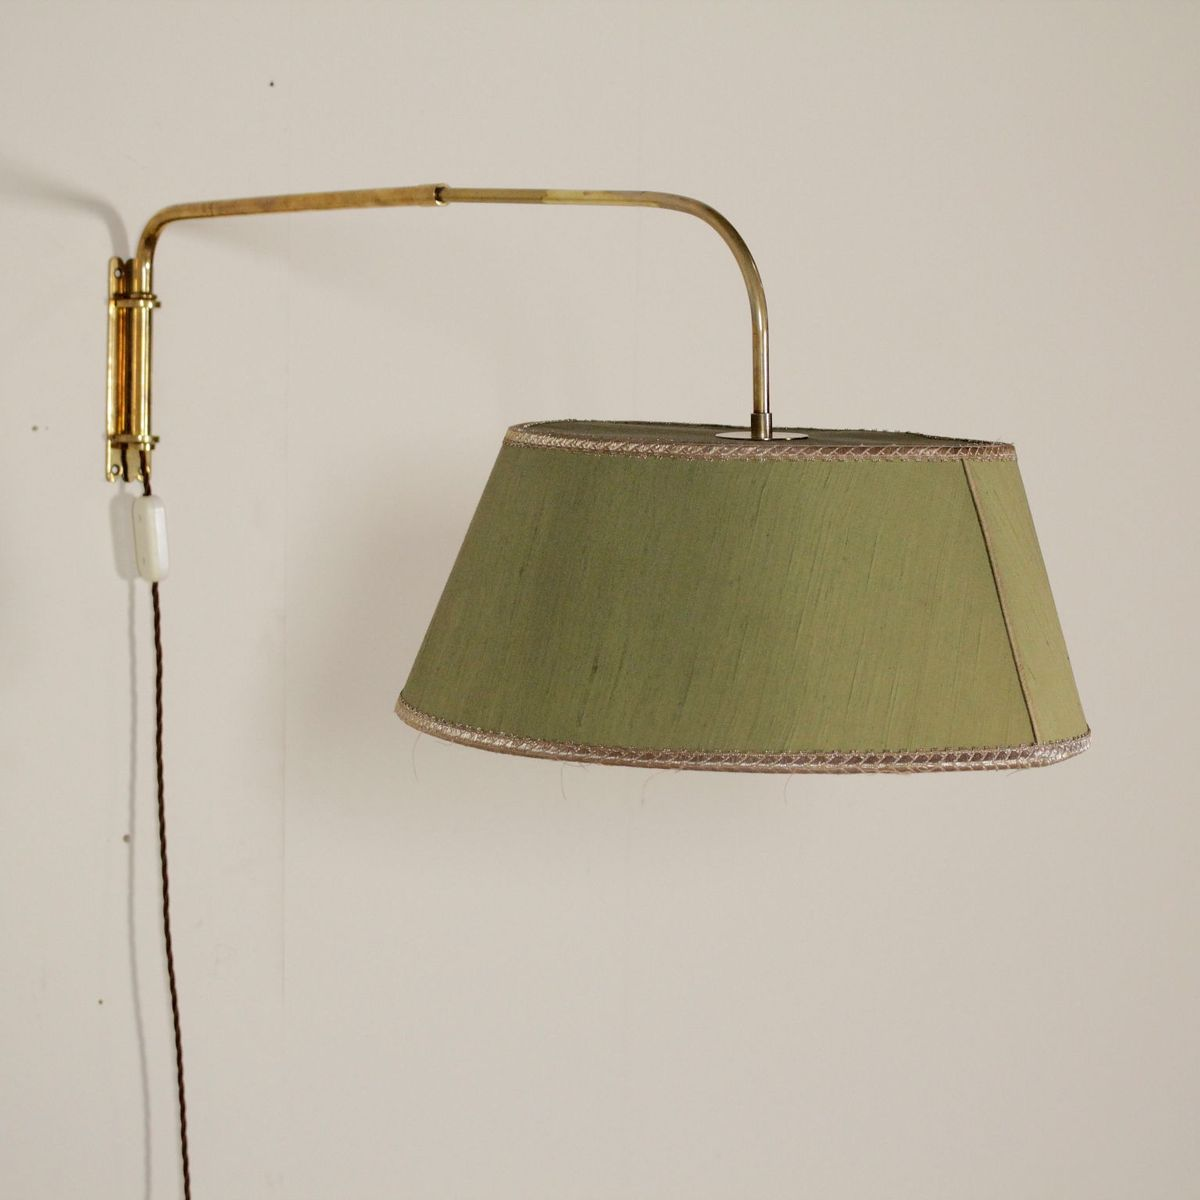 Extendable Brass Wall Lamp, 1950s for sale at Pamono